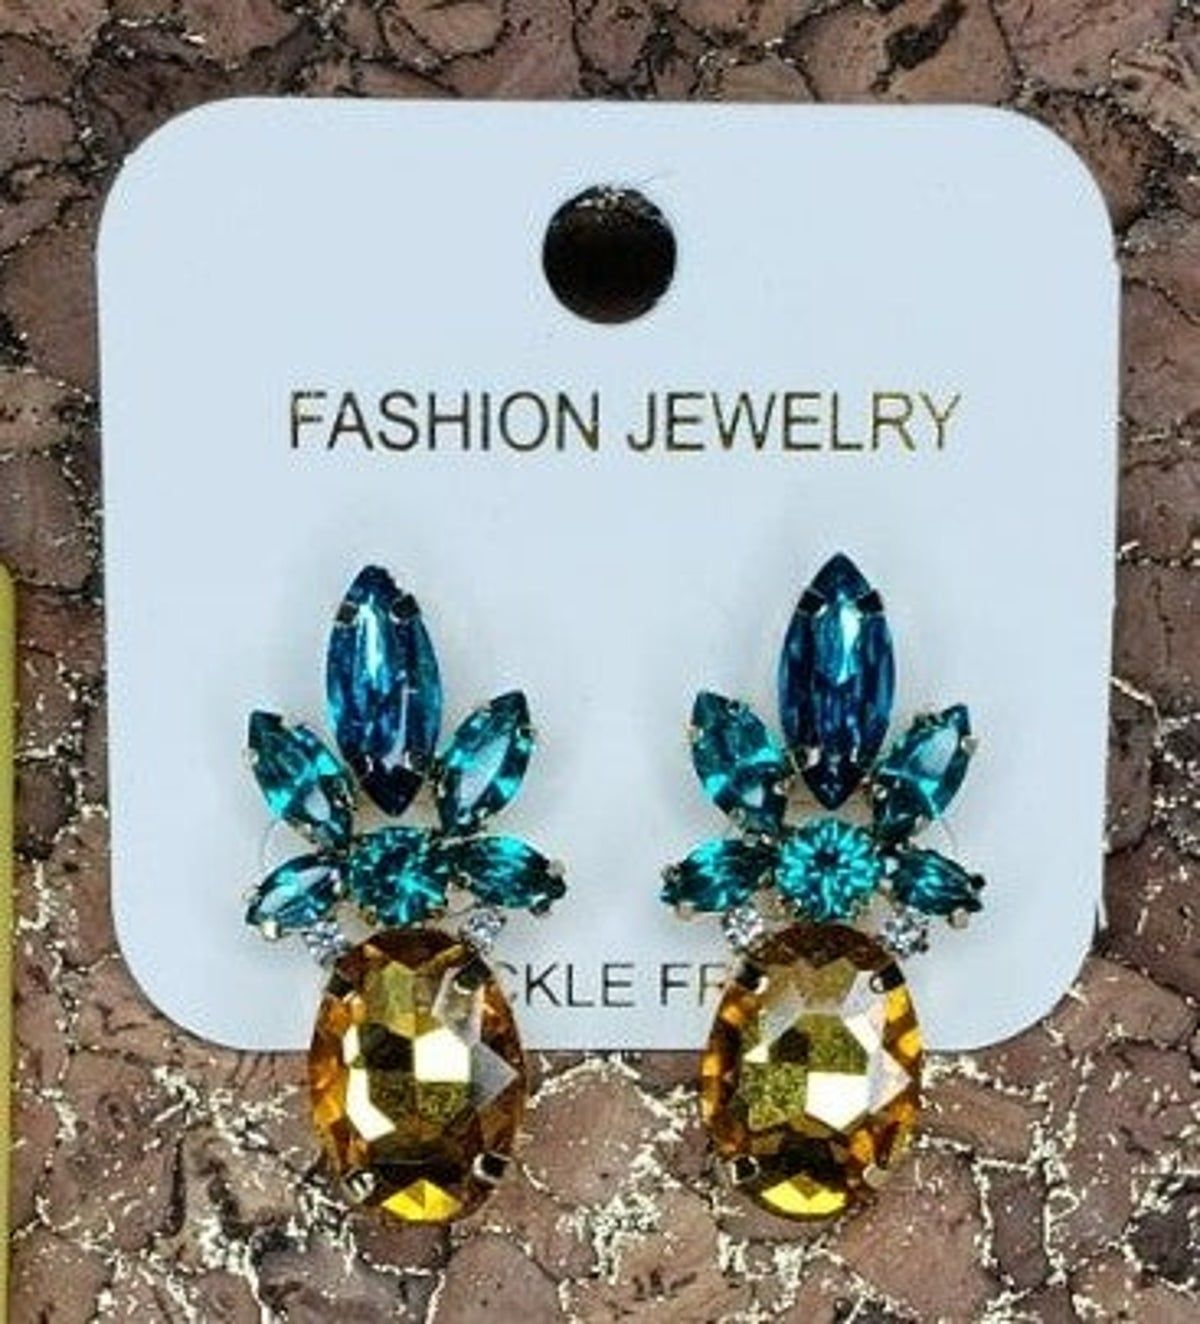 Pineapple earrings!!! #pineappleexpress These cute earrings are full of shine and ready for good times.